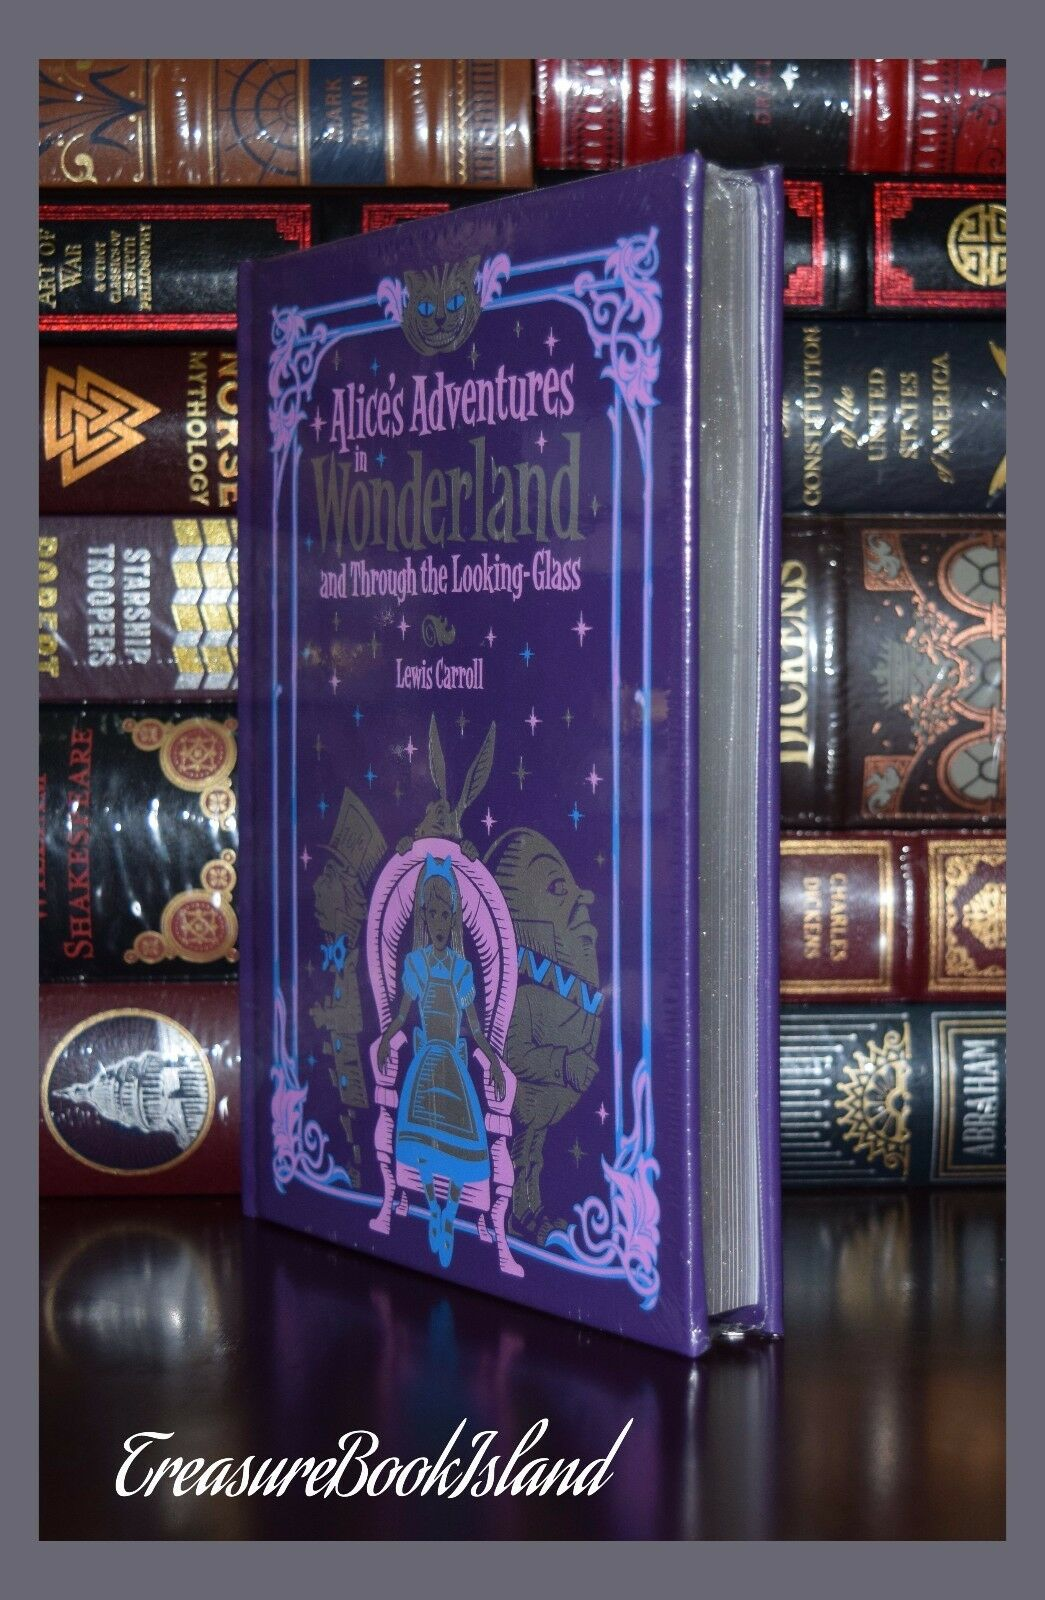 Alice in Wonderland & Through Looking Glass Illustrated New Sealed Leather Bound